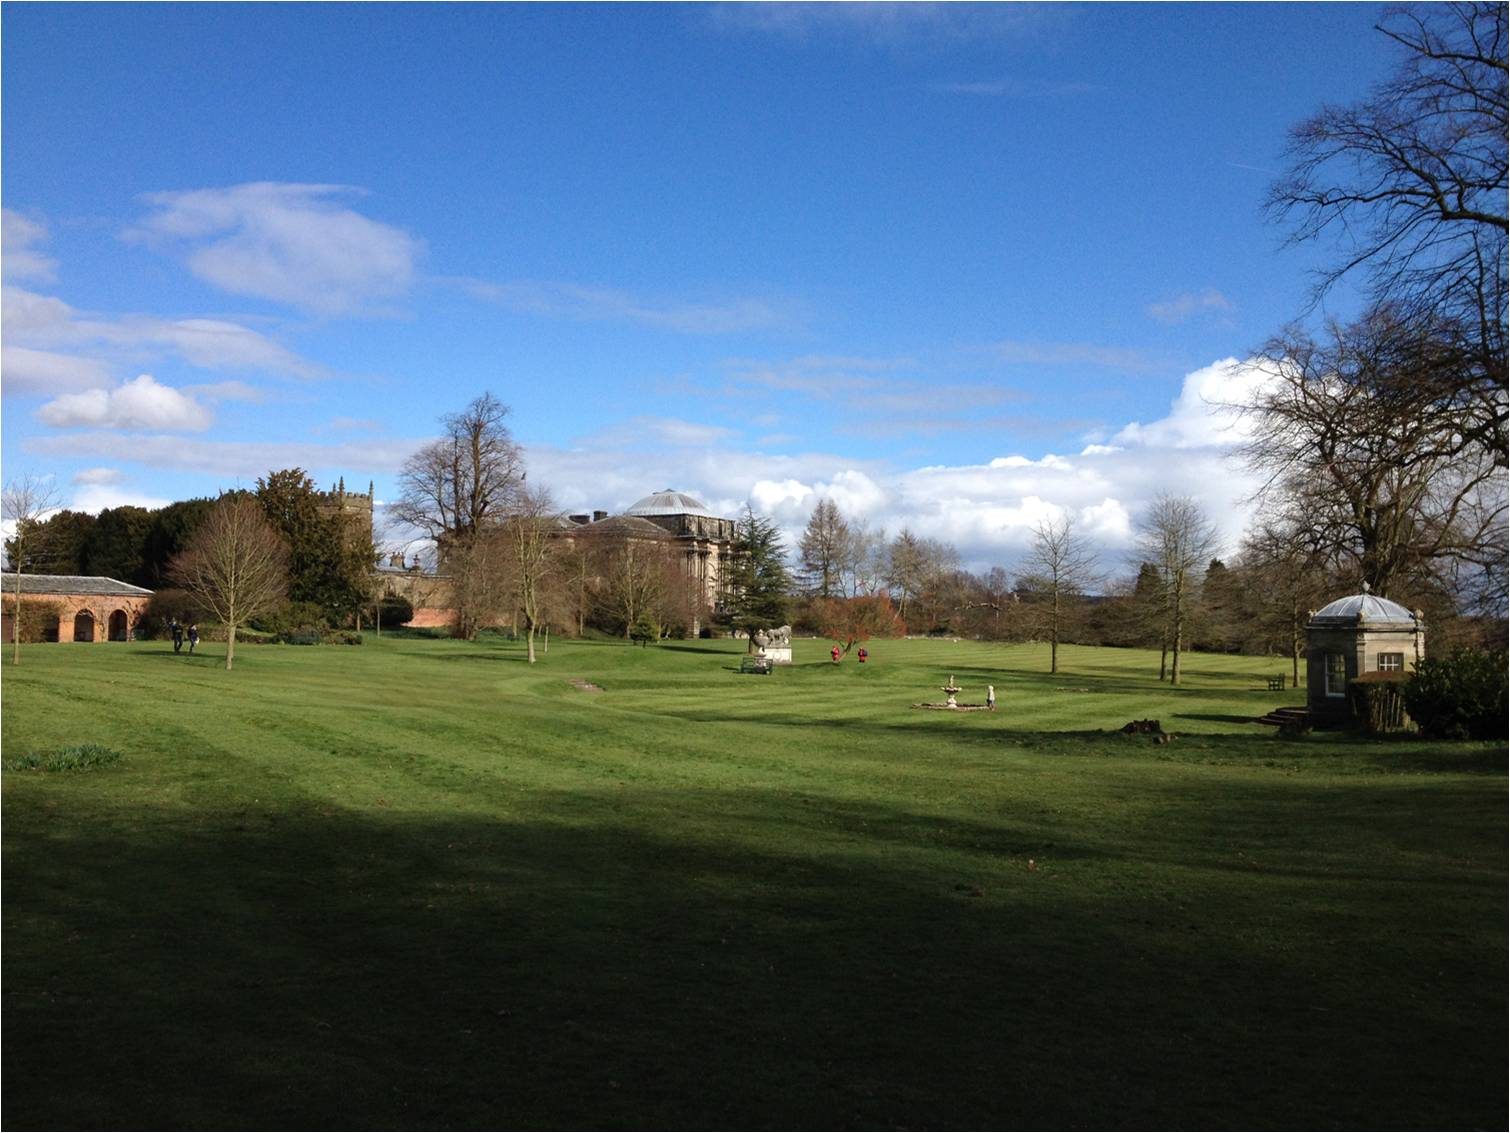 The grounds of Kedleston Hall